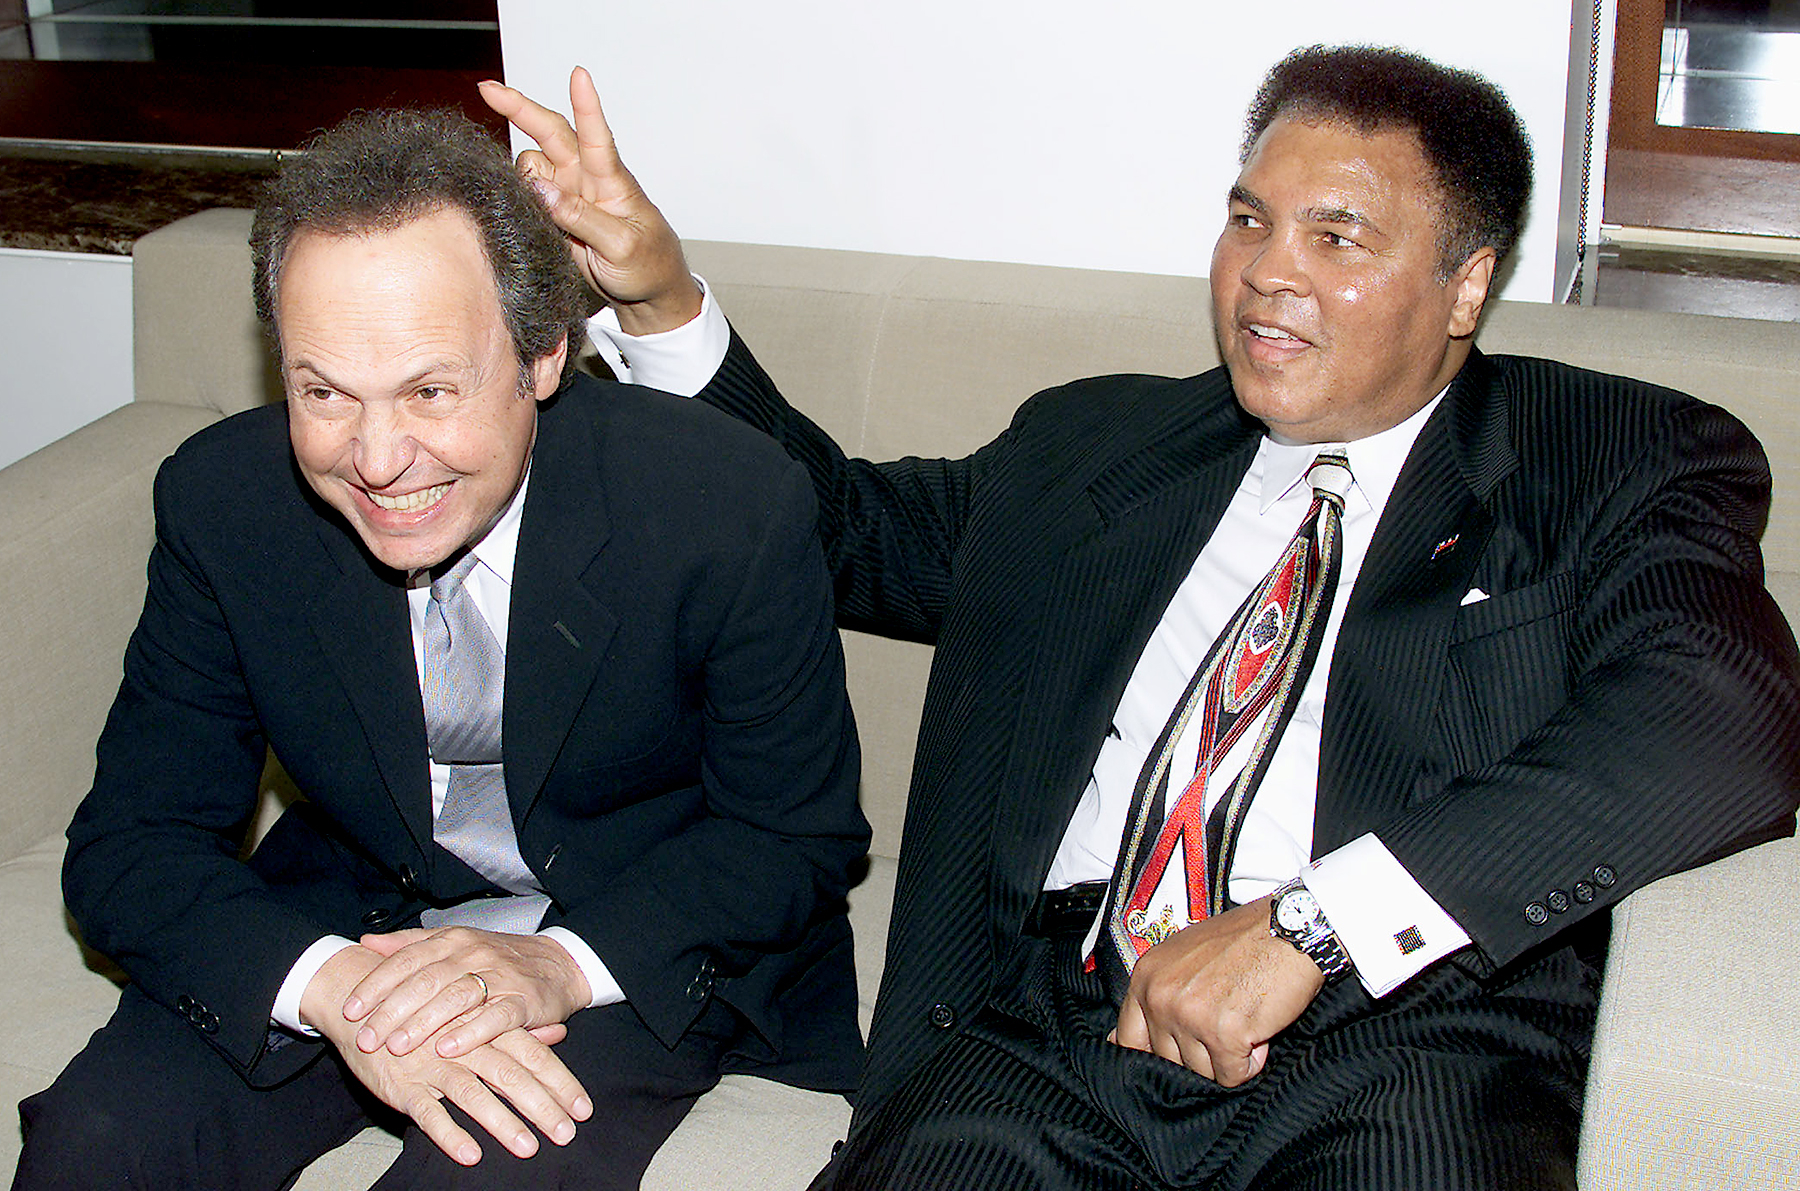 Billy Crystal and Muhammad Ali at Audemars Piguet's Time to Give Celebrity Watch Auction for Charity, held at Christie's in NYC in 2000.